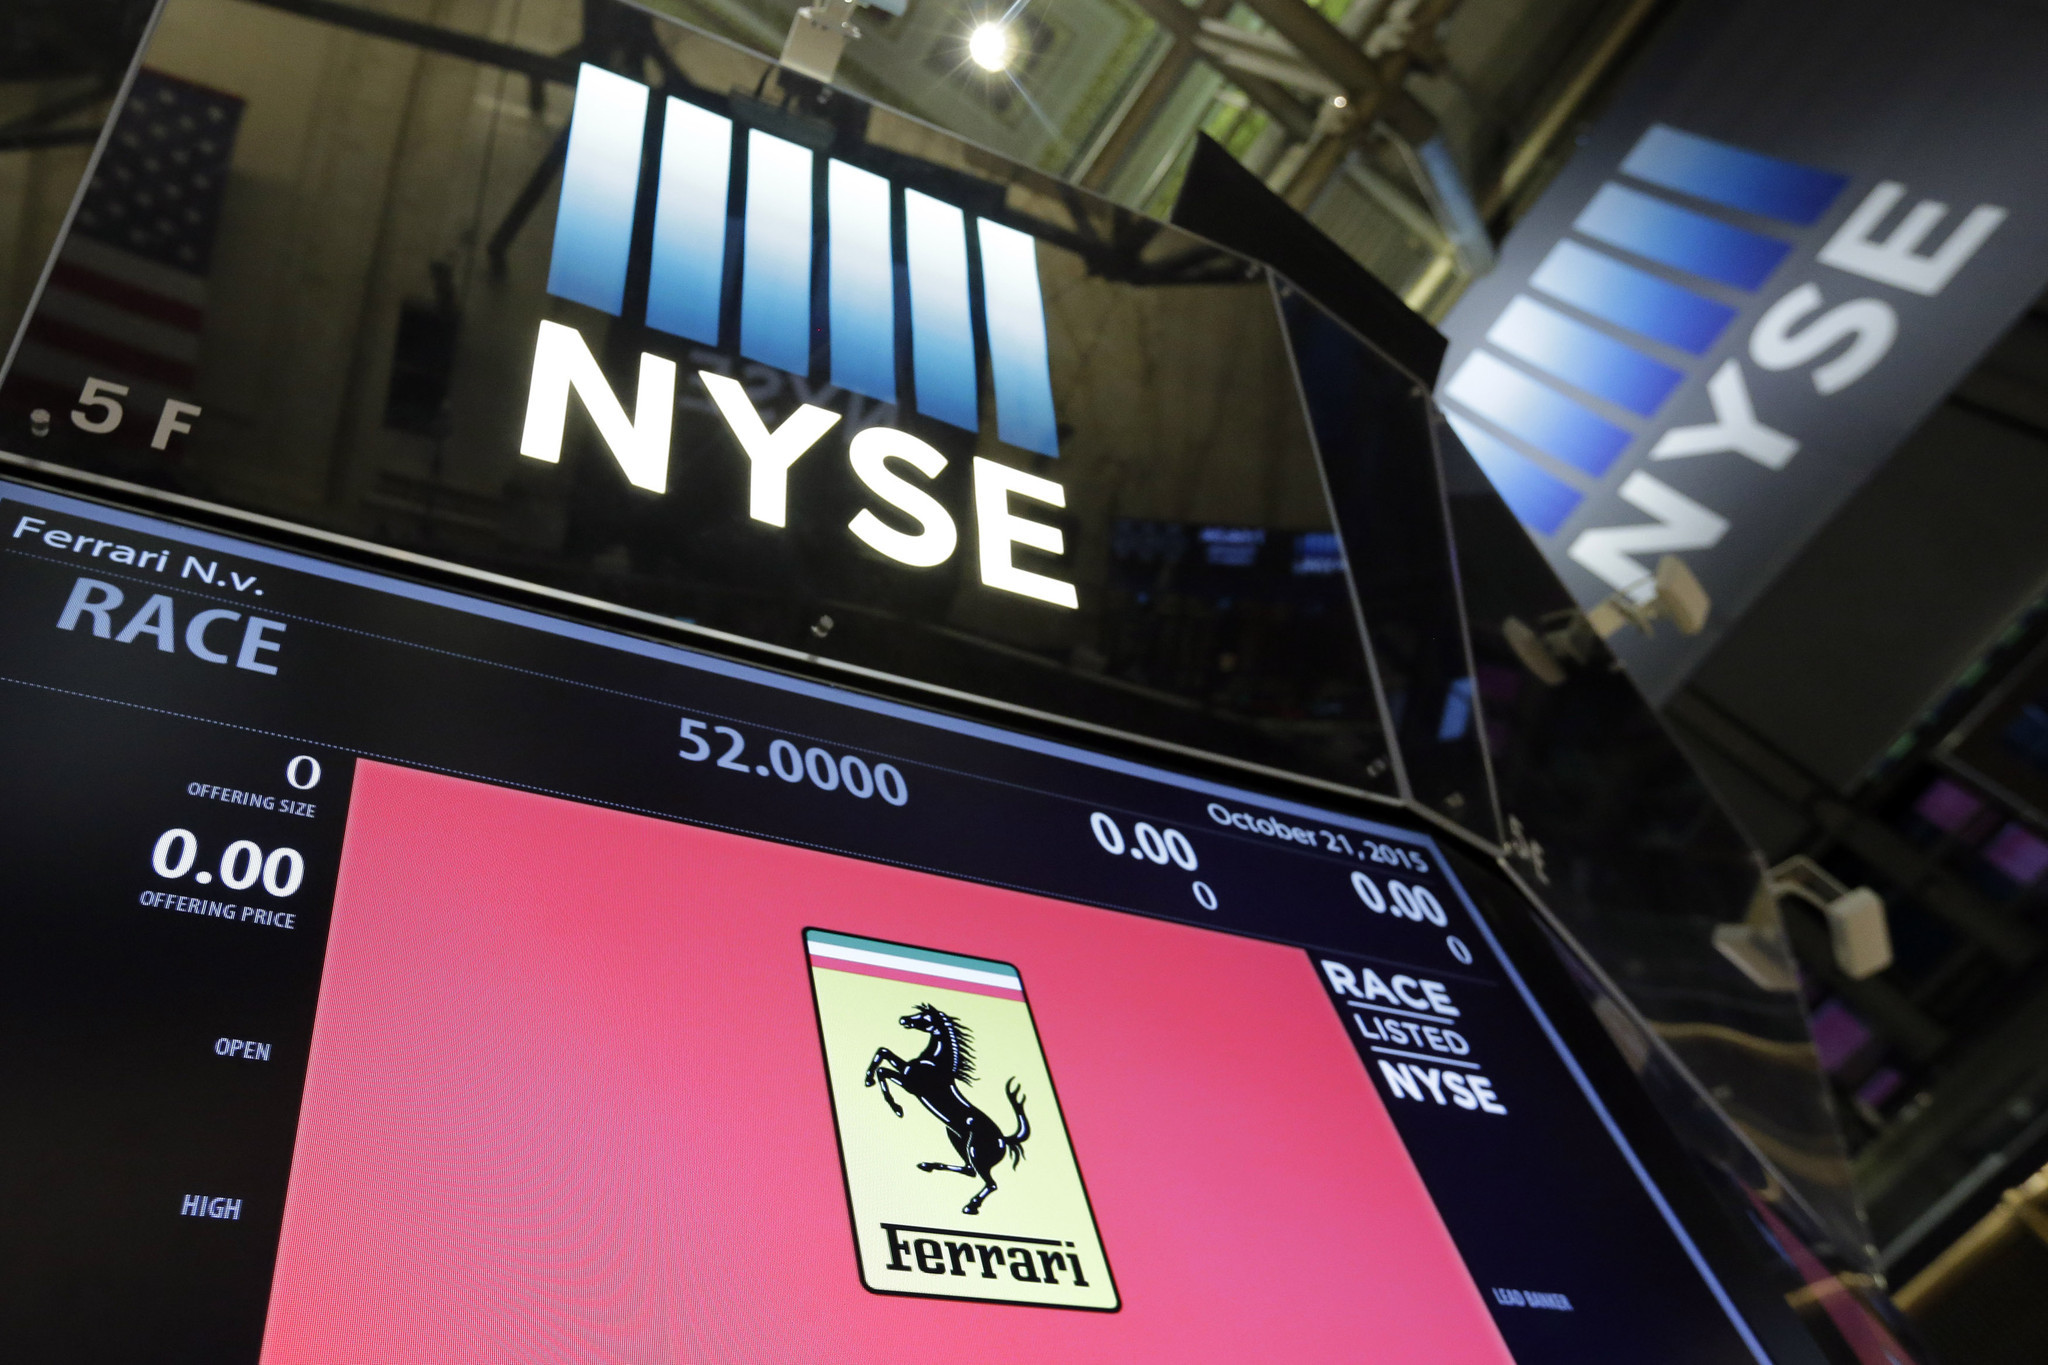 Ferrari Goes Public With Race On Nyse Chicago Tribune